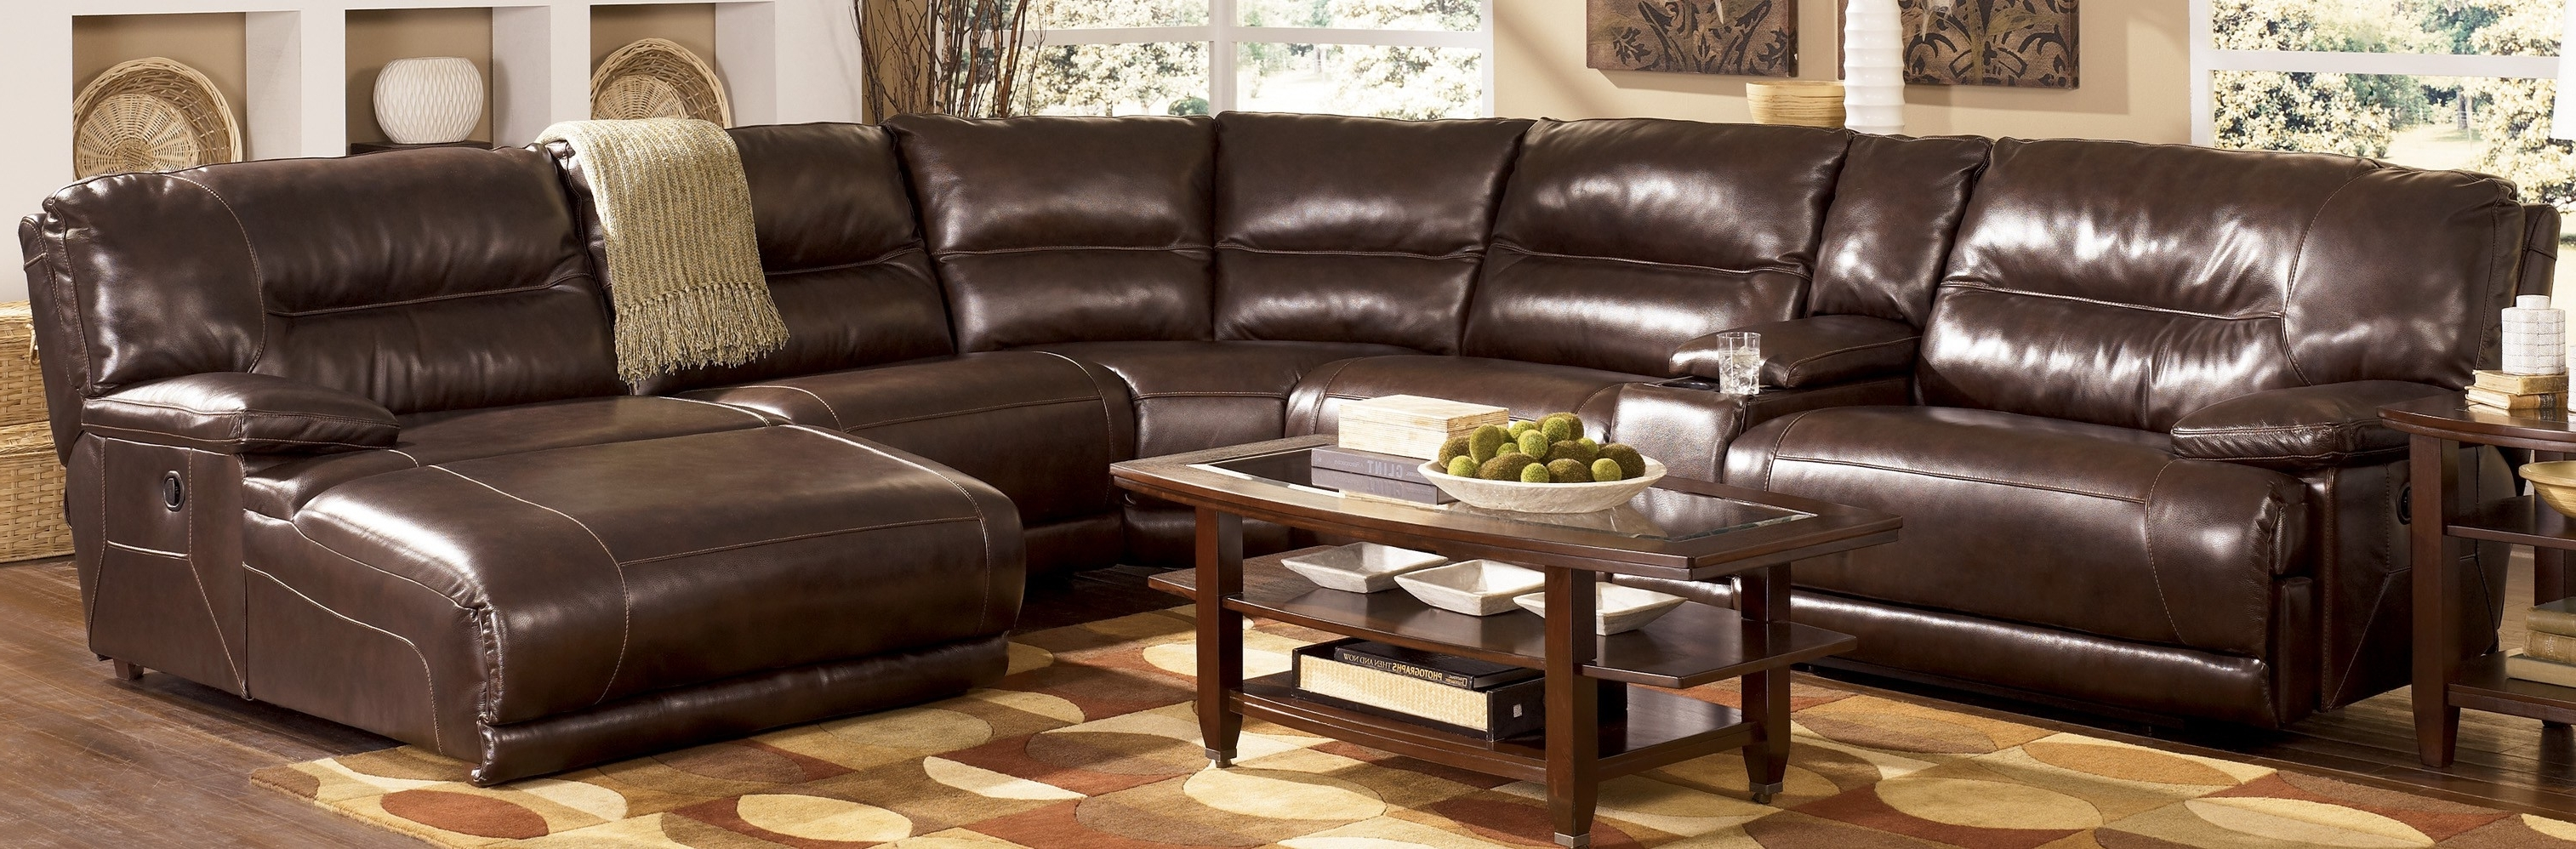 Famous Leather Sectional Sleeper Sofa Sectional Sofas With Recliners And Inside Leather Sectional Sleeper Sofas With Chaise (View 2 of 15)